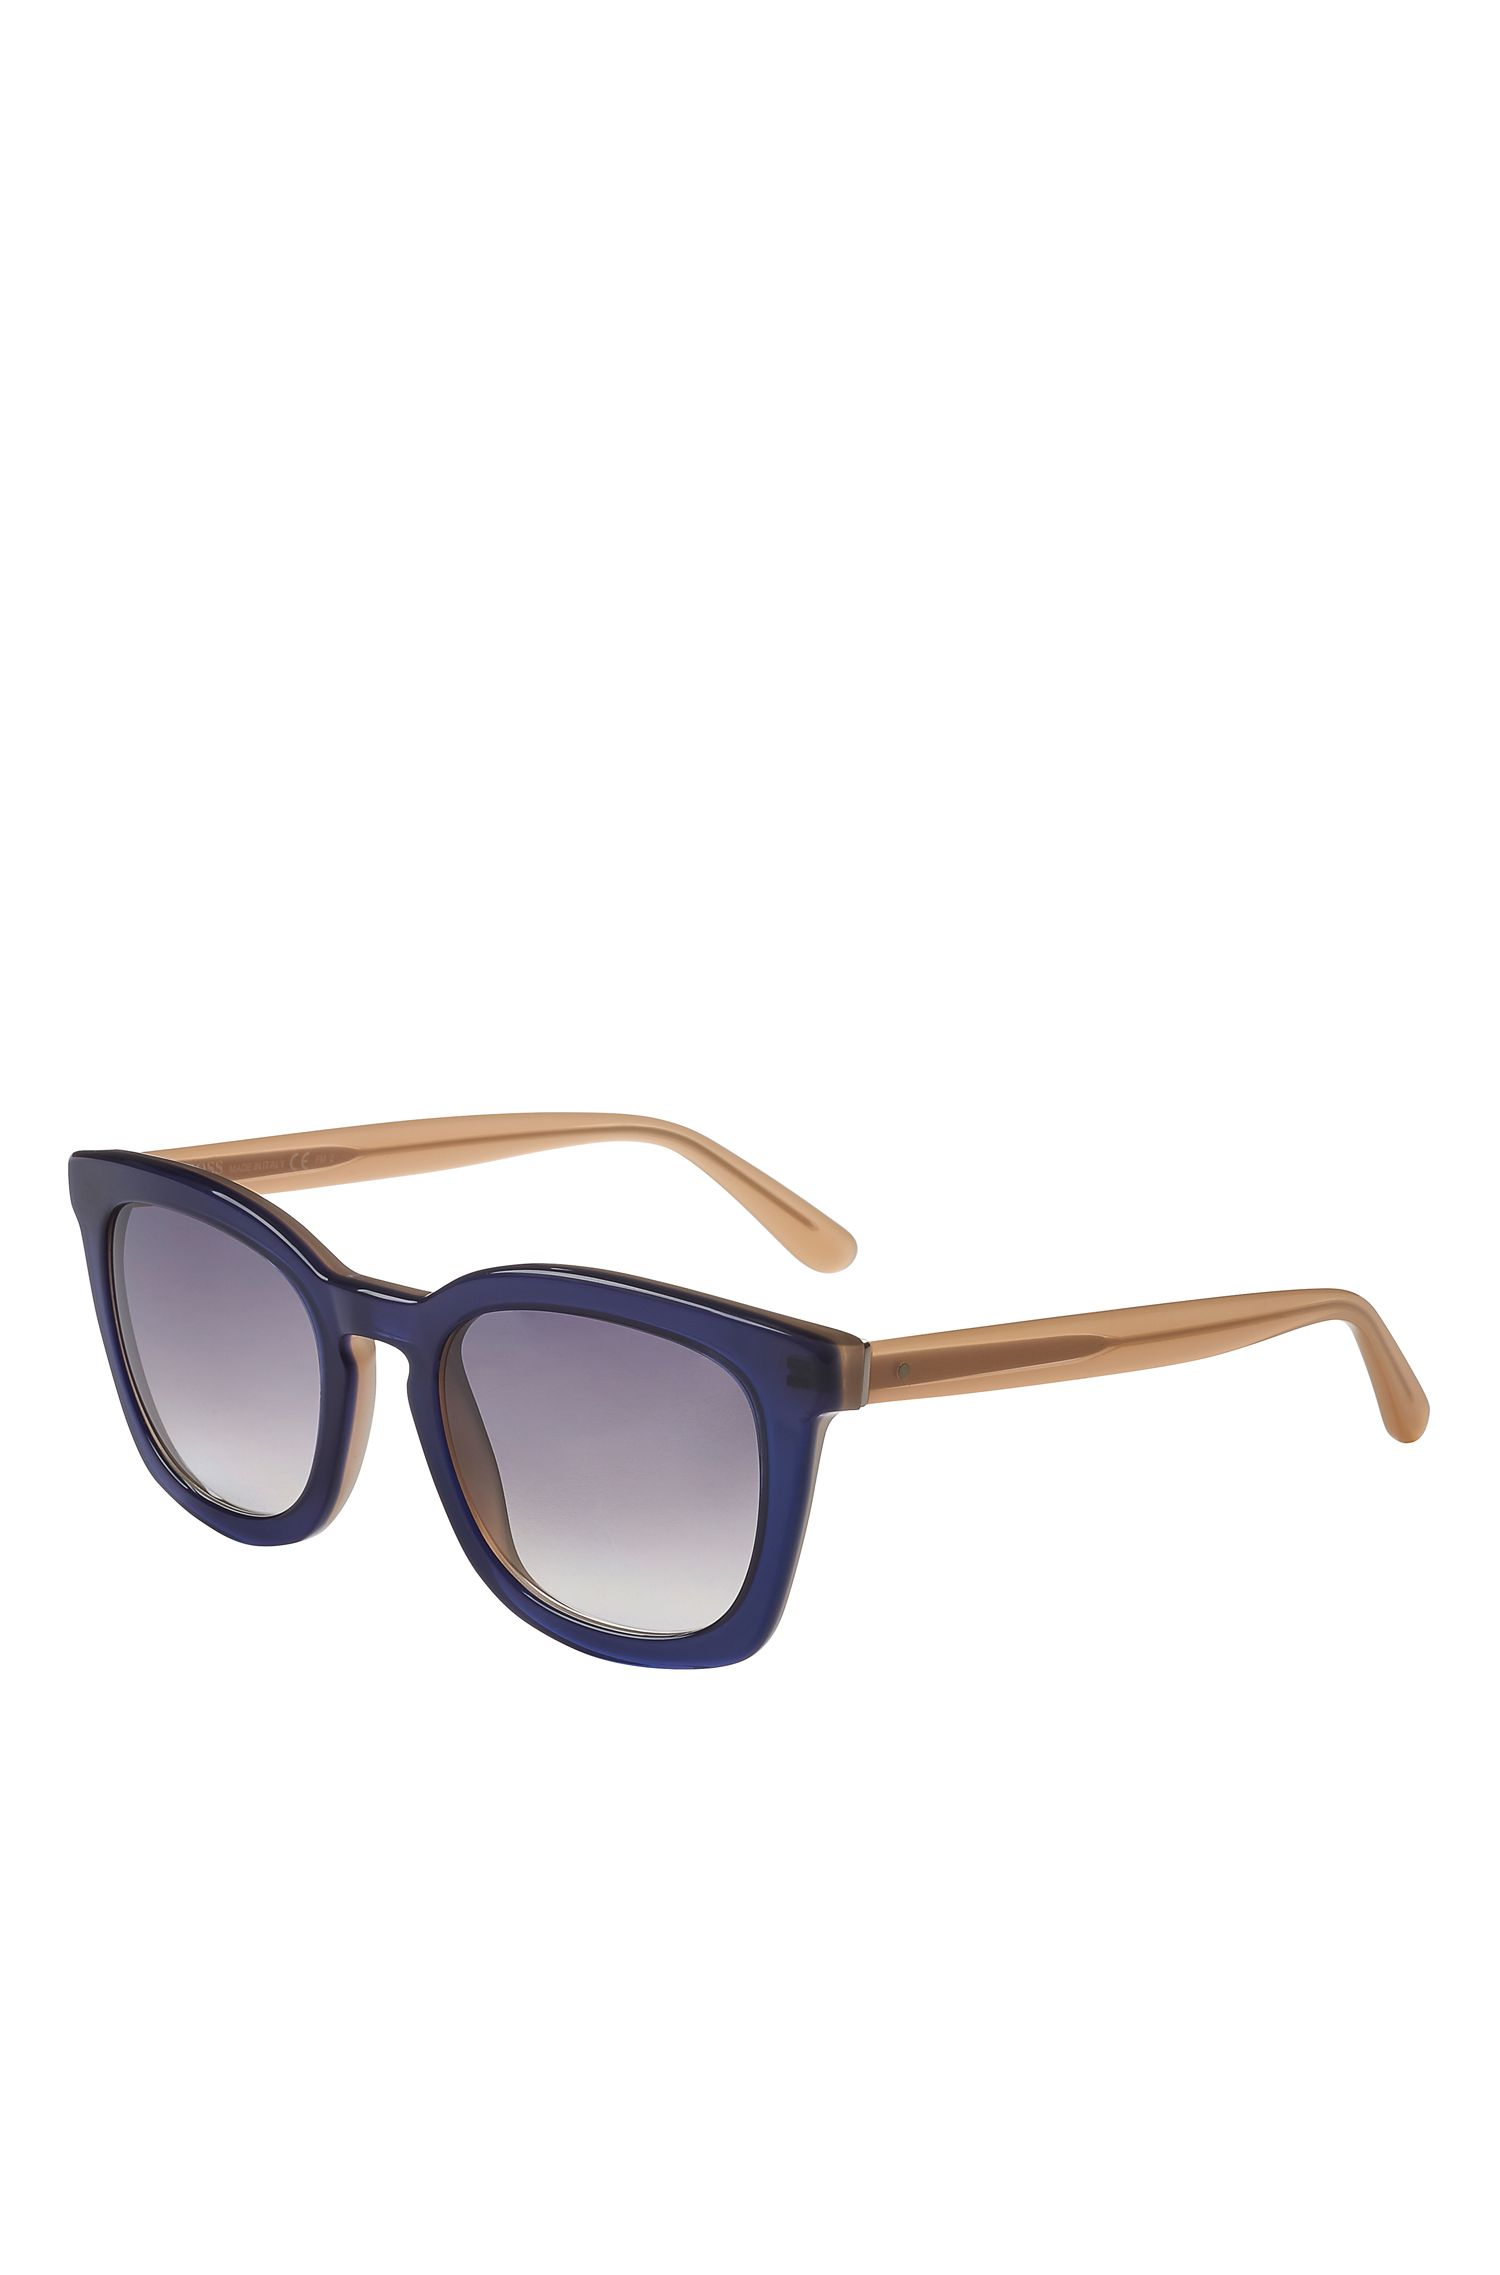 Gradient Blue Lens Rectangular Sunglasses | BOSS 0743S